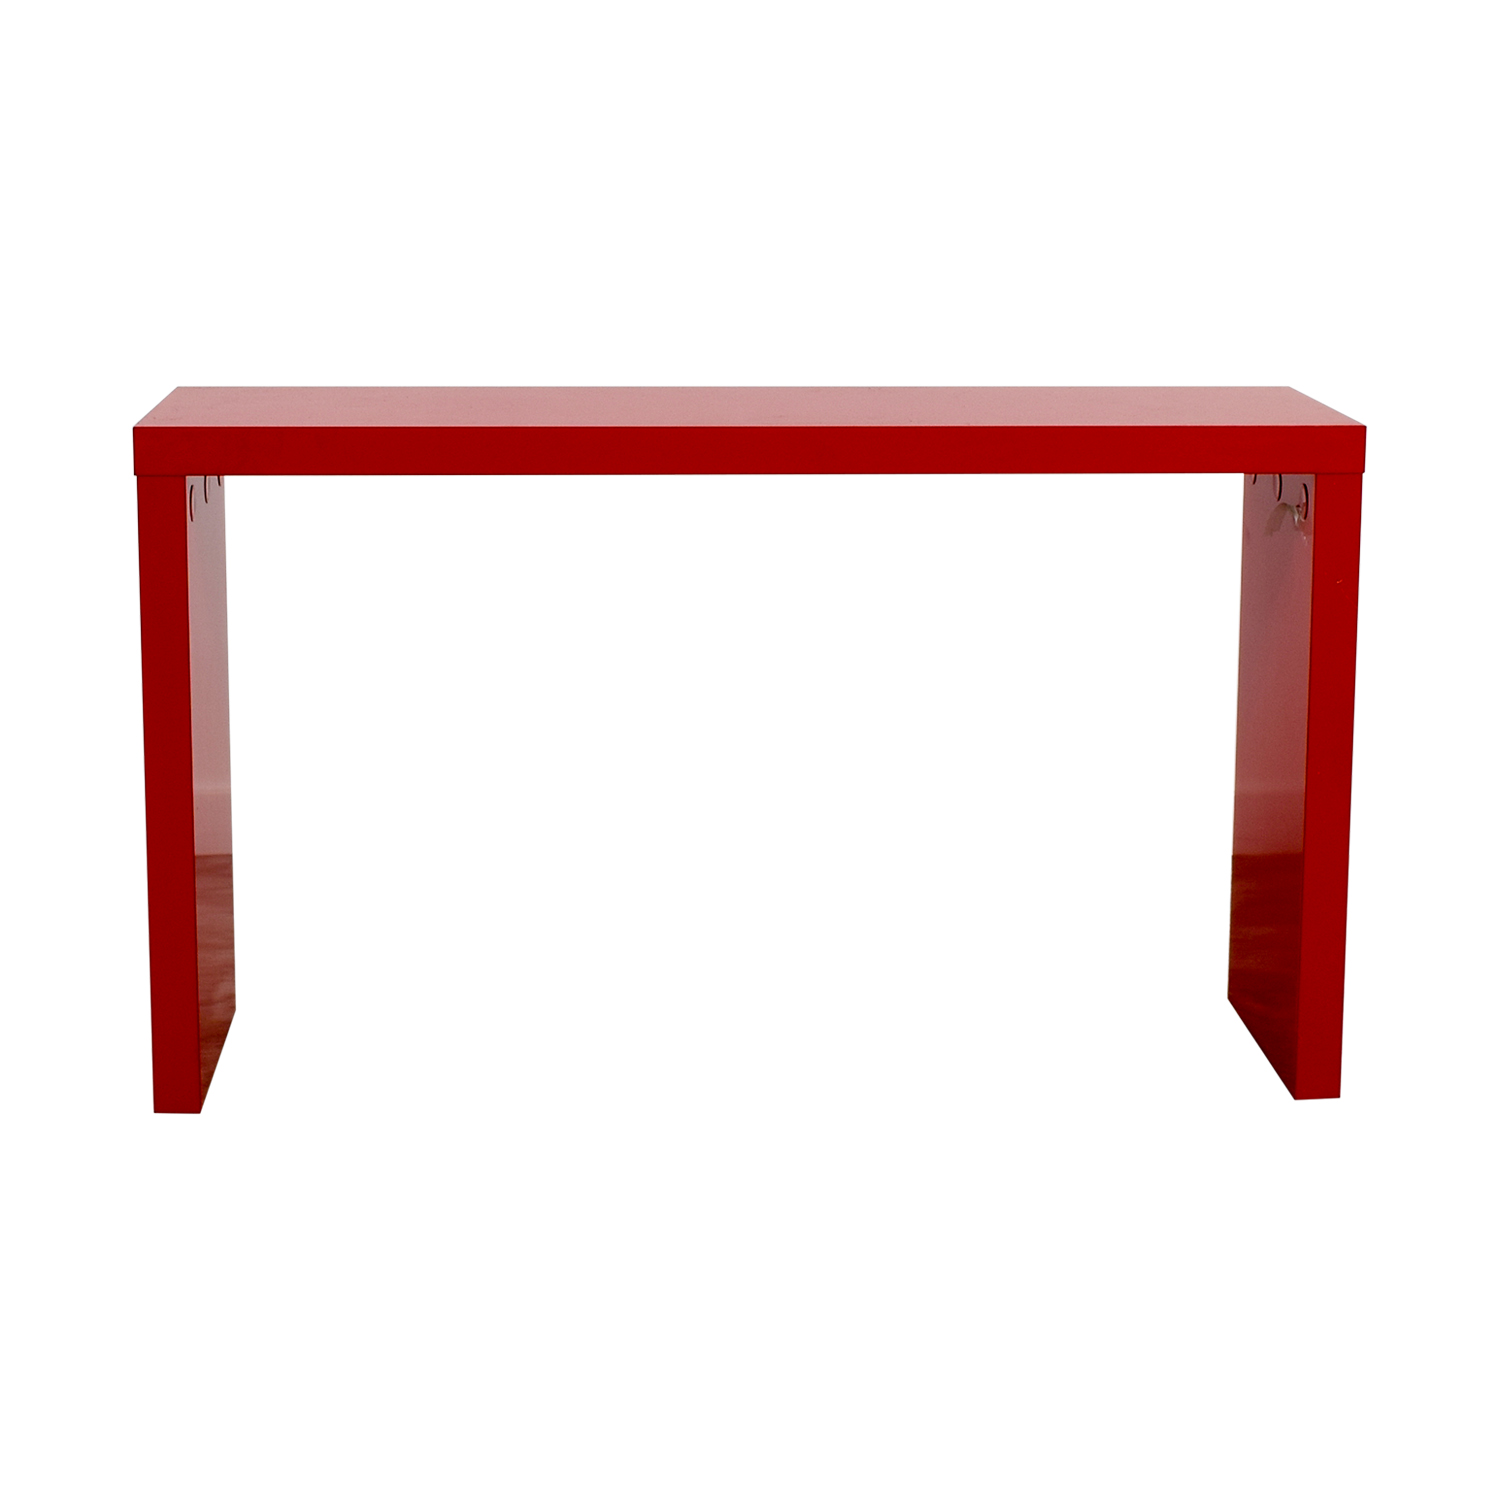 Furniture Masters Furniture Masters Red Credenza coupon